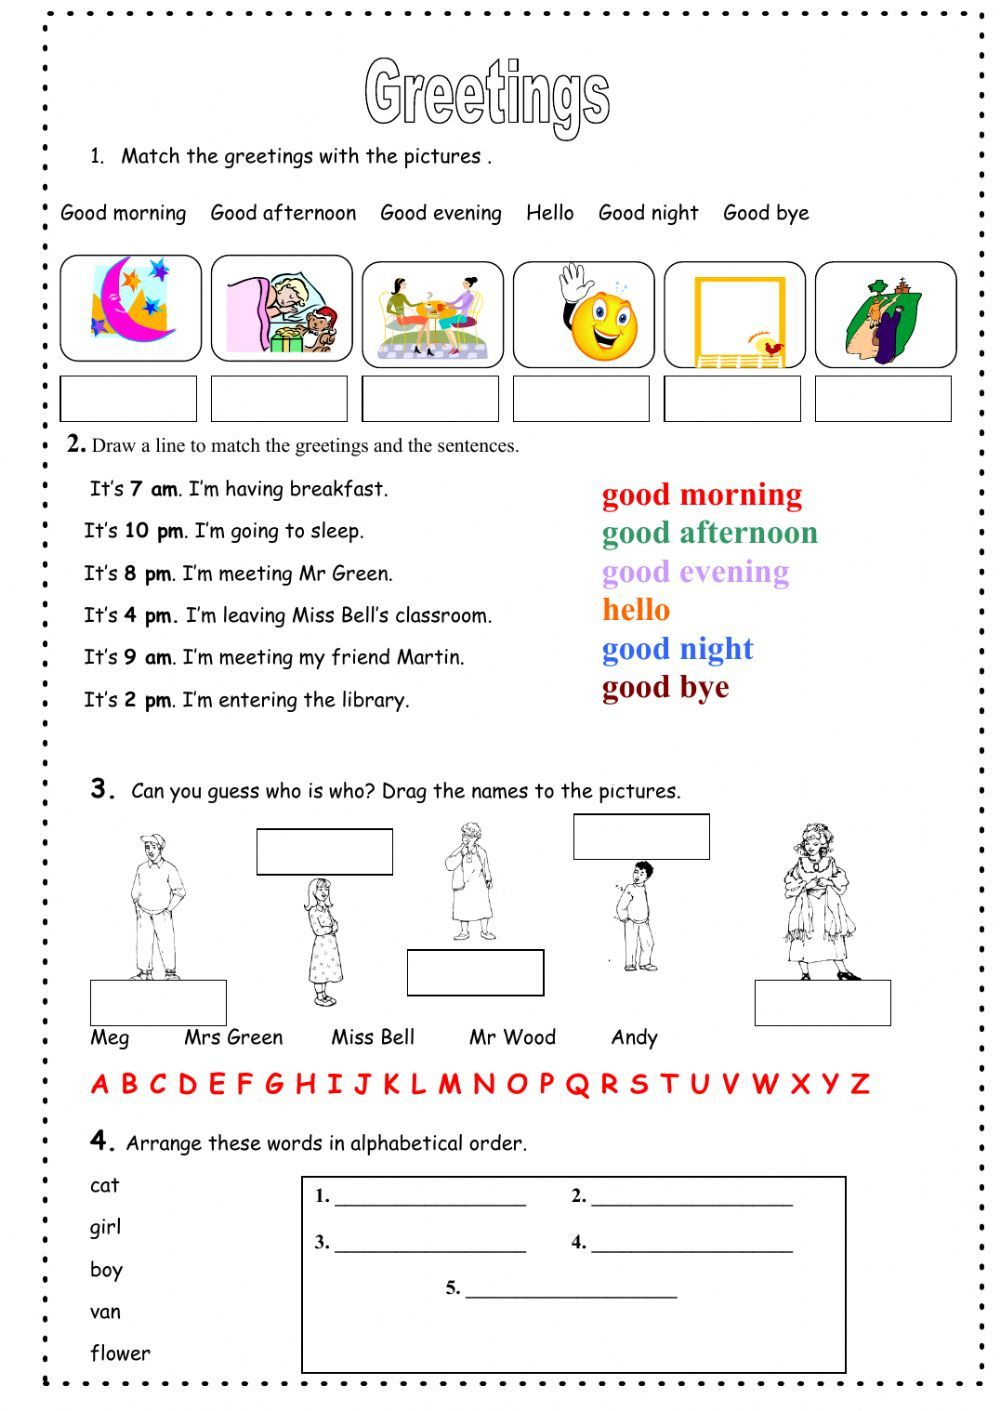 Greetings interactive and downloadable worksheet. You can